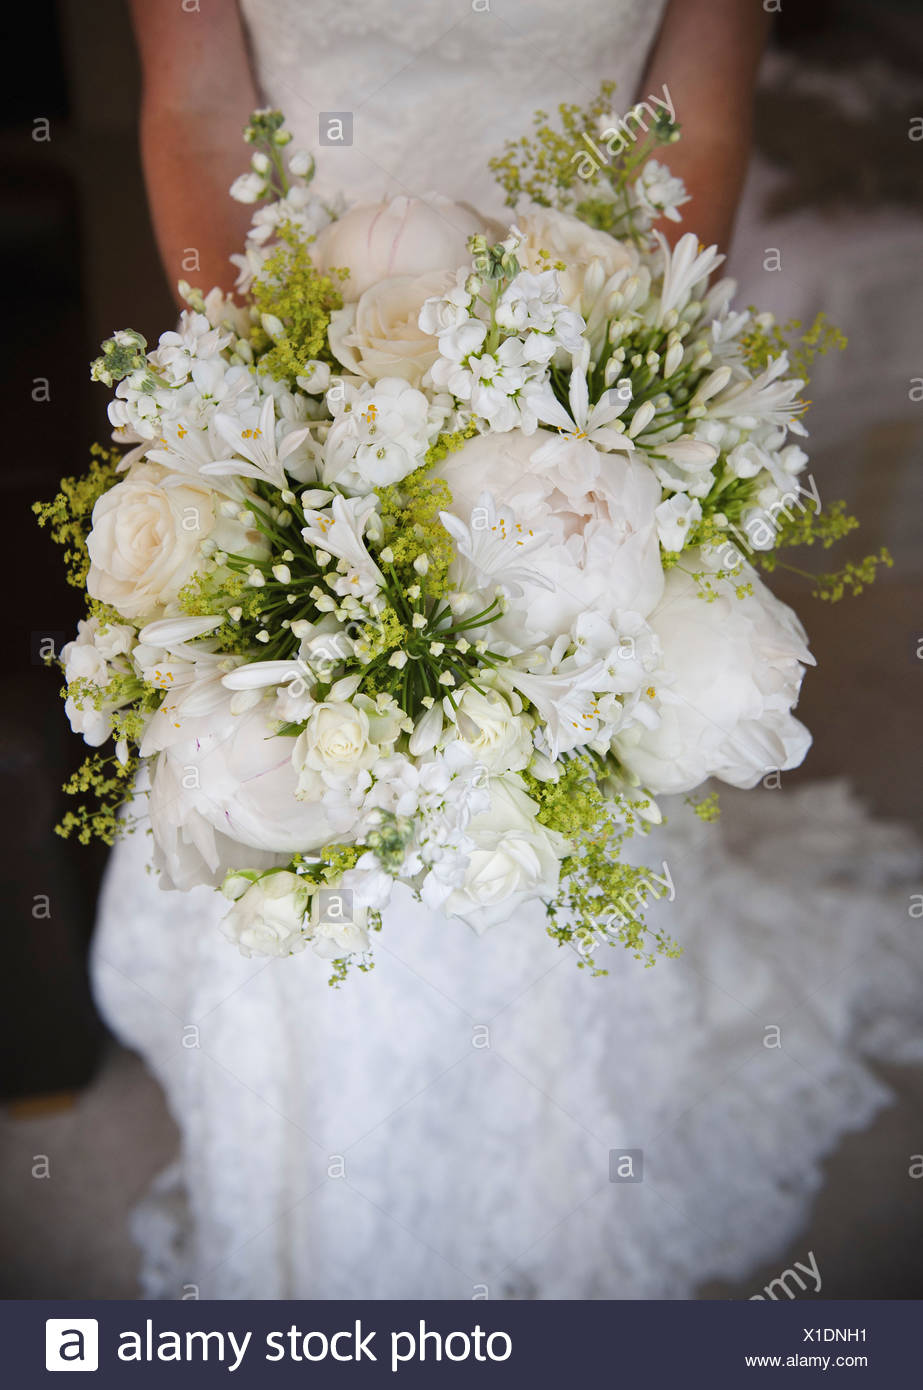 A bride holding a bridal bouquet of peonies and white flowers roses a bride holding a bridal bouquet of peonies and white flowers roses close up izmirmasajfo